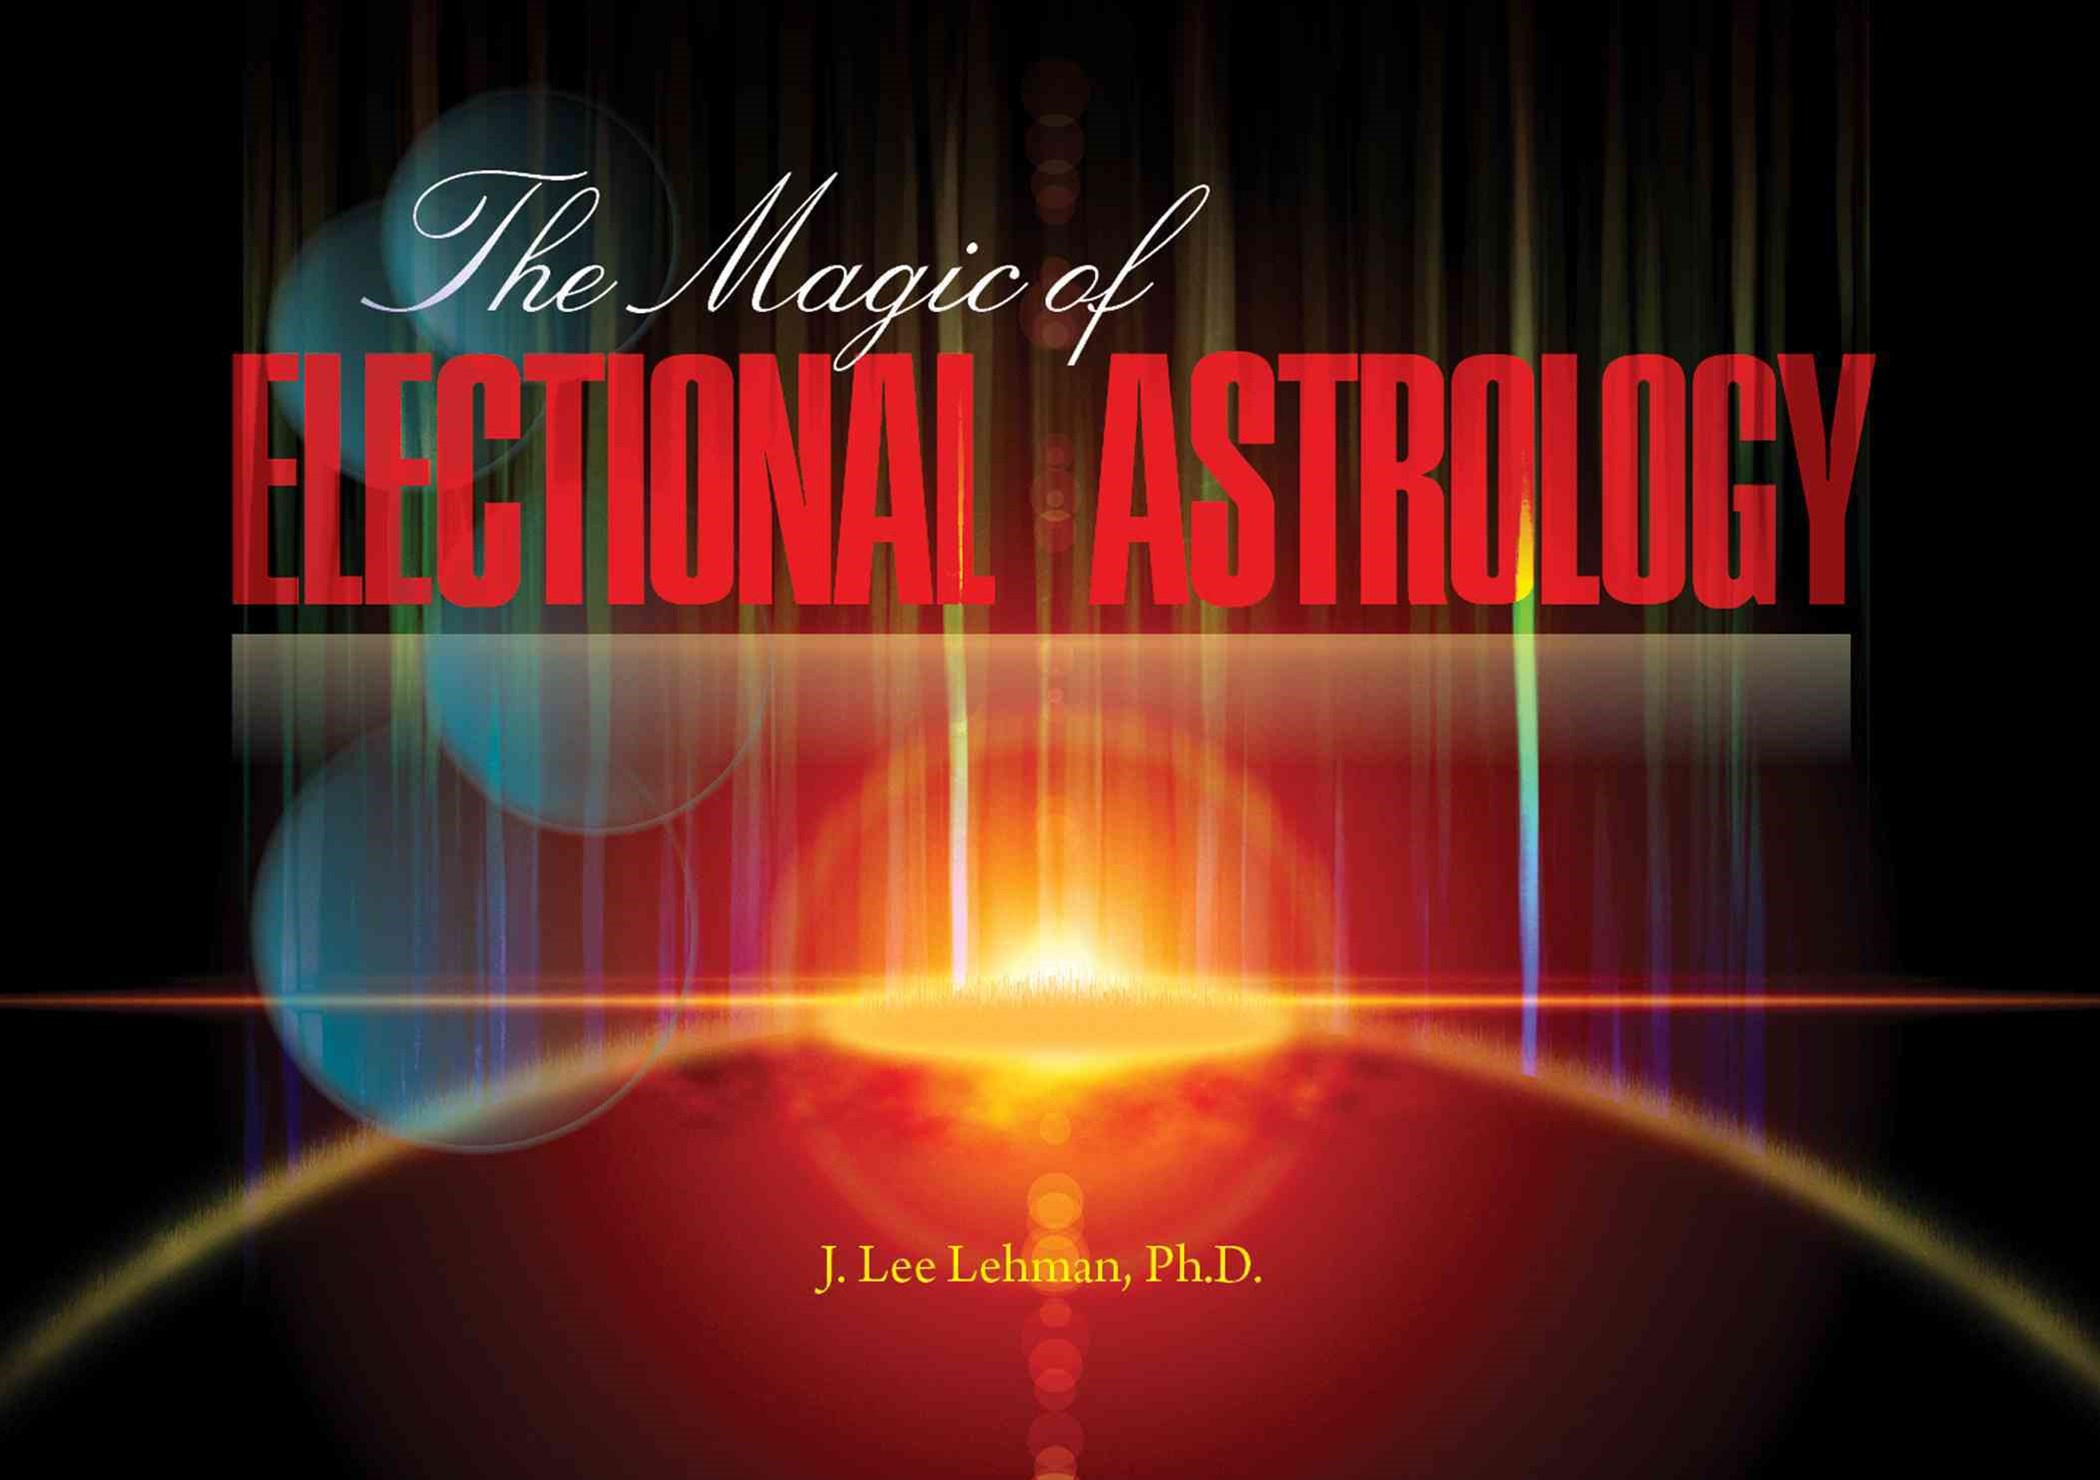 Magic of Electional Astrology